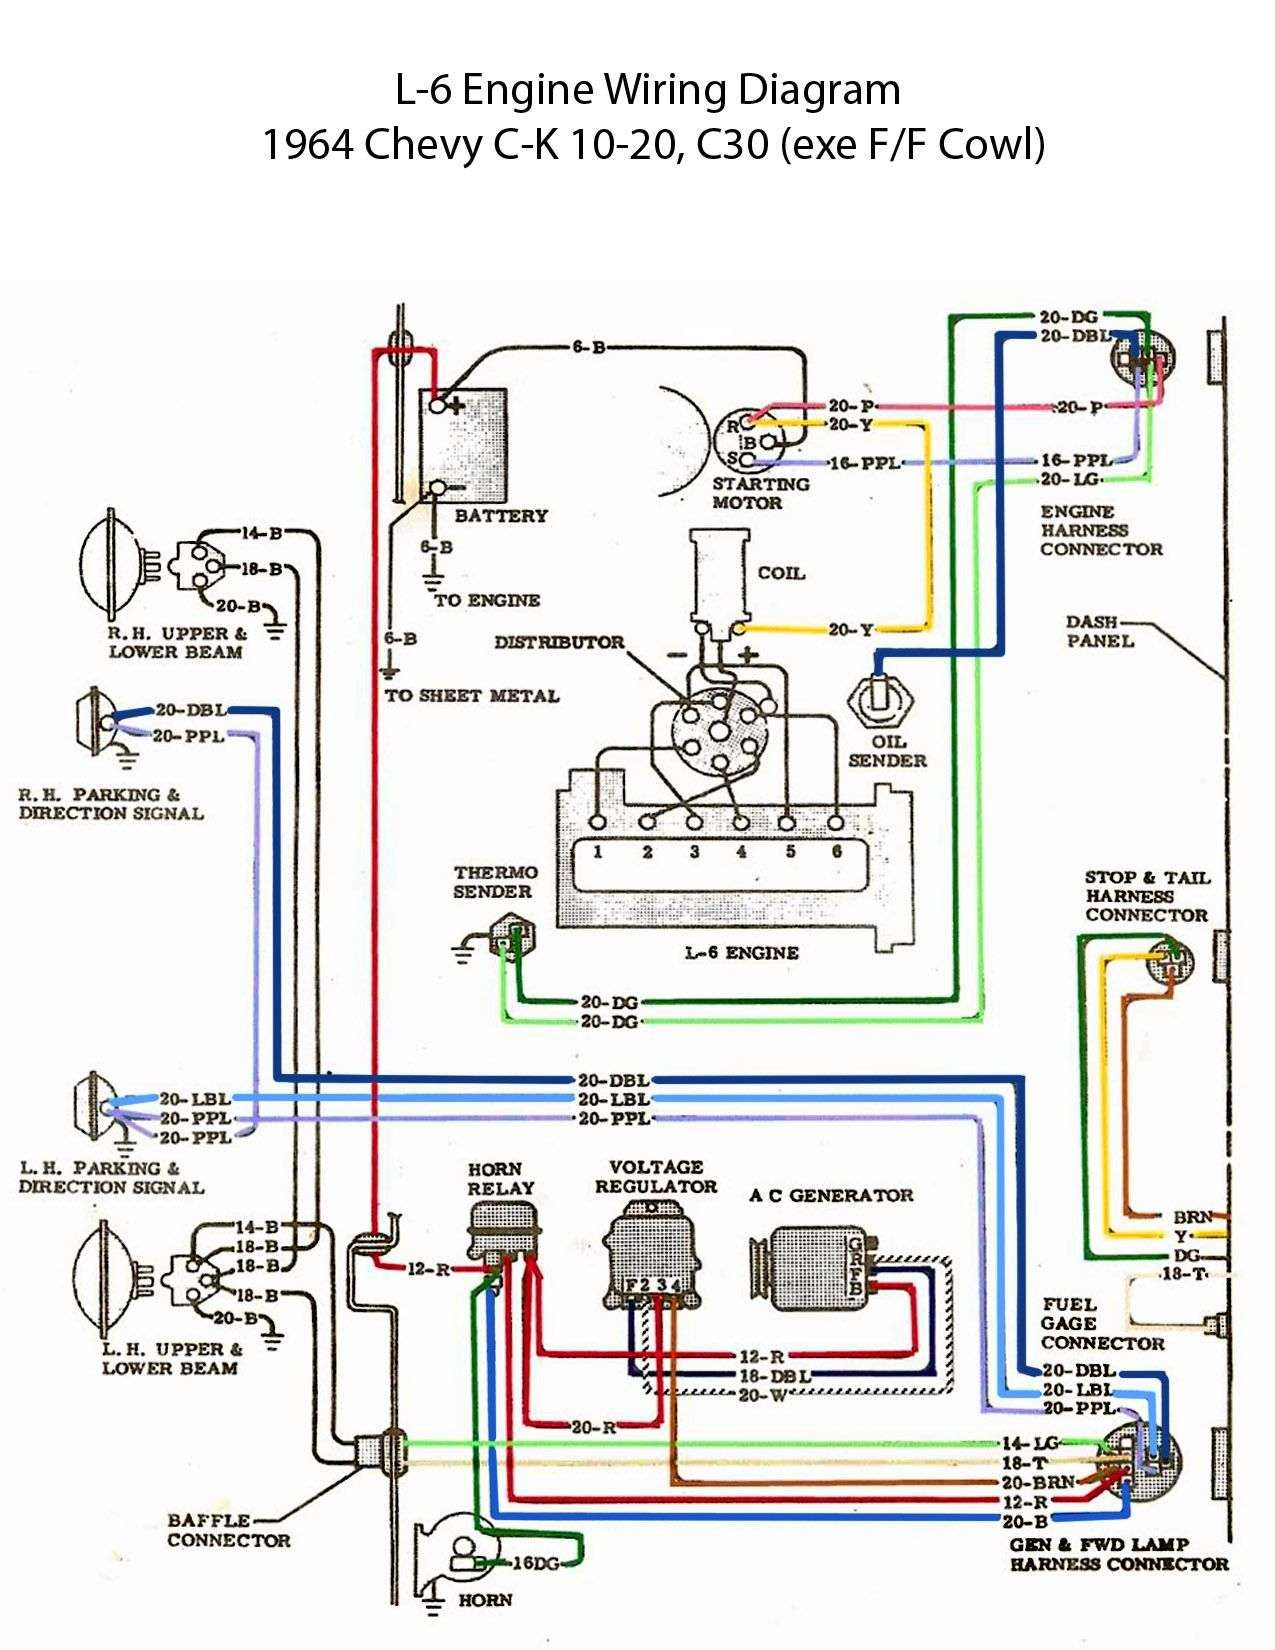 Wiring Diagram Cars Trucks Wiring Diagram Cars Trucks Truck Horn Wiring Wiring Diagrams Chevy Trucks 1963 Chevy Truck Electrical Diagram